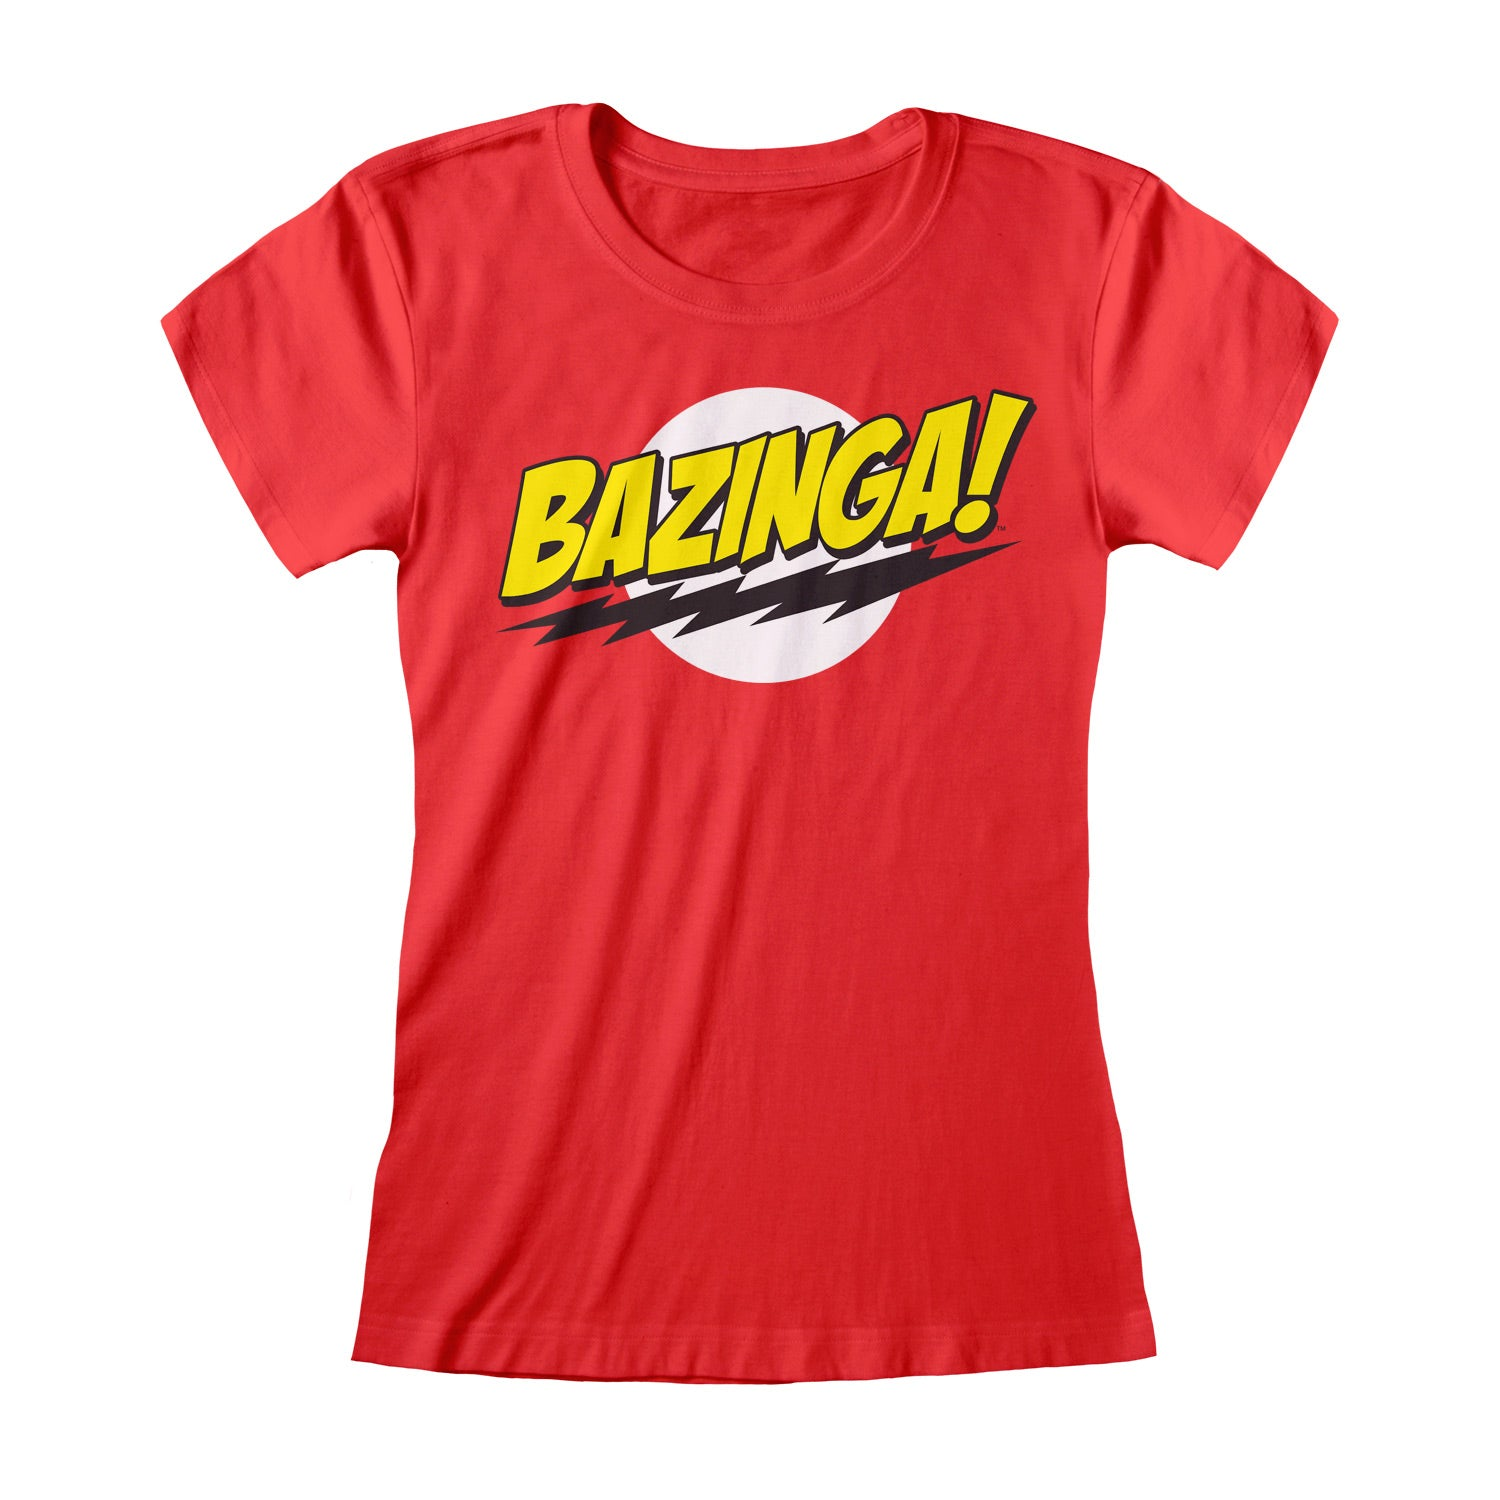 T-Shirt - Big Bang Theory - Bazinga!